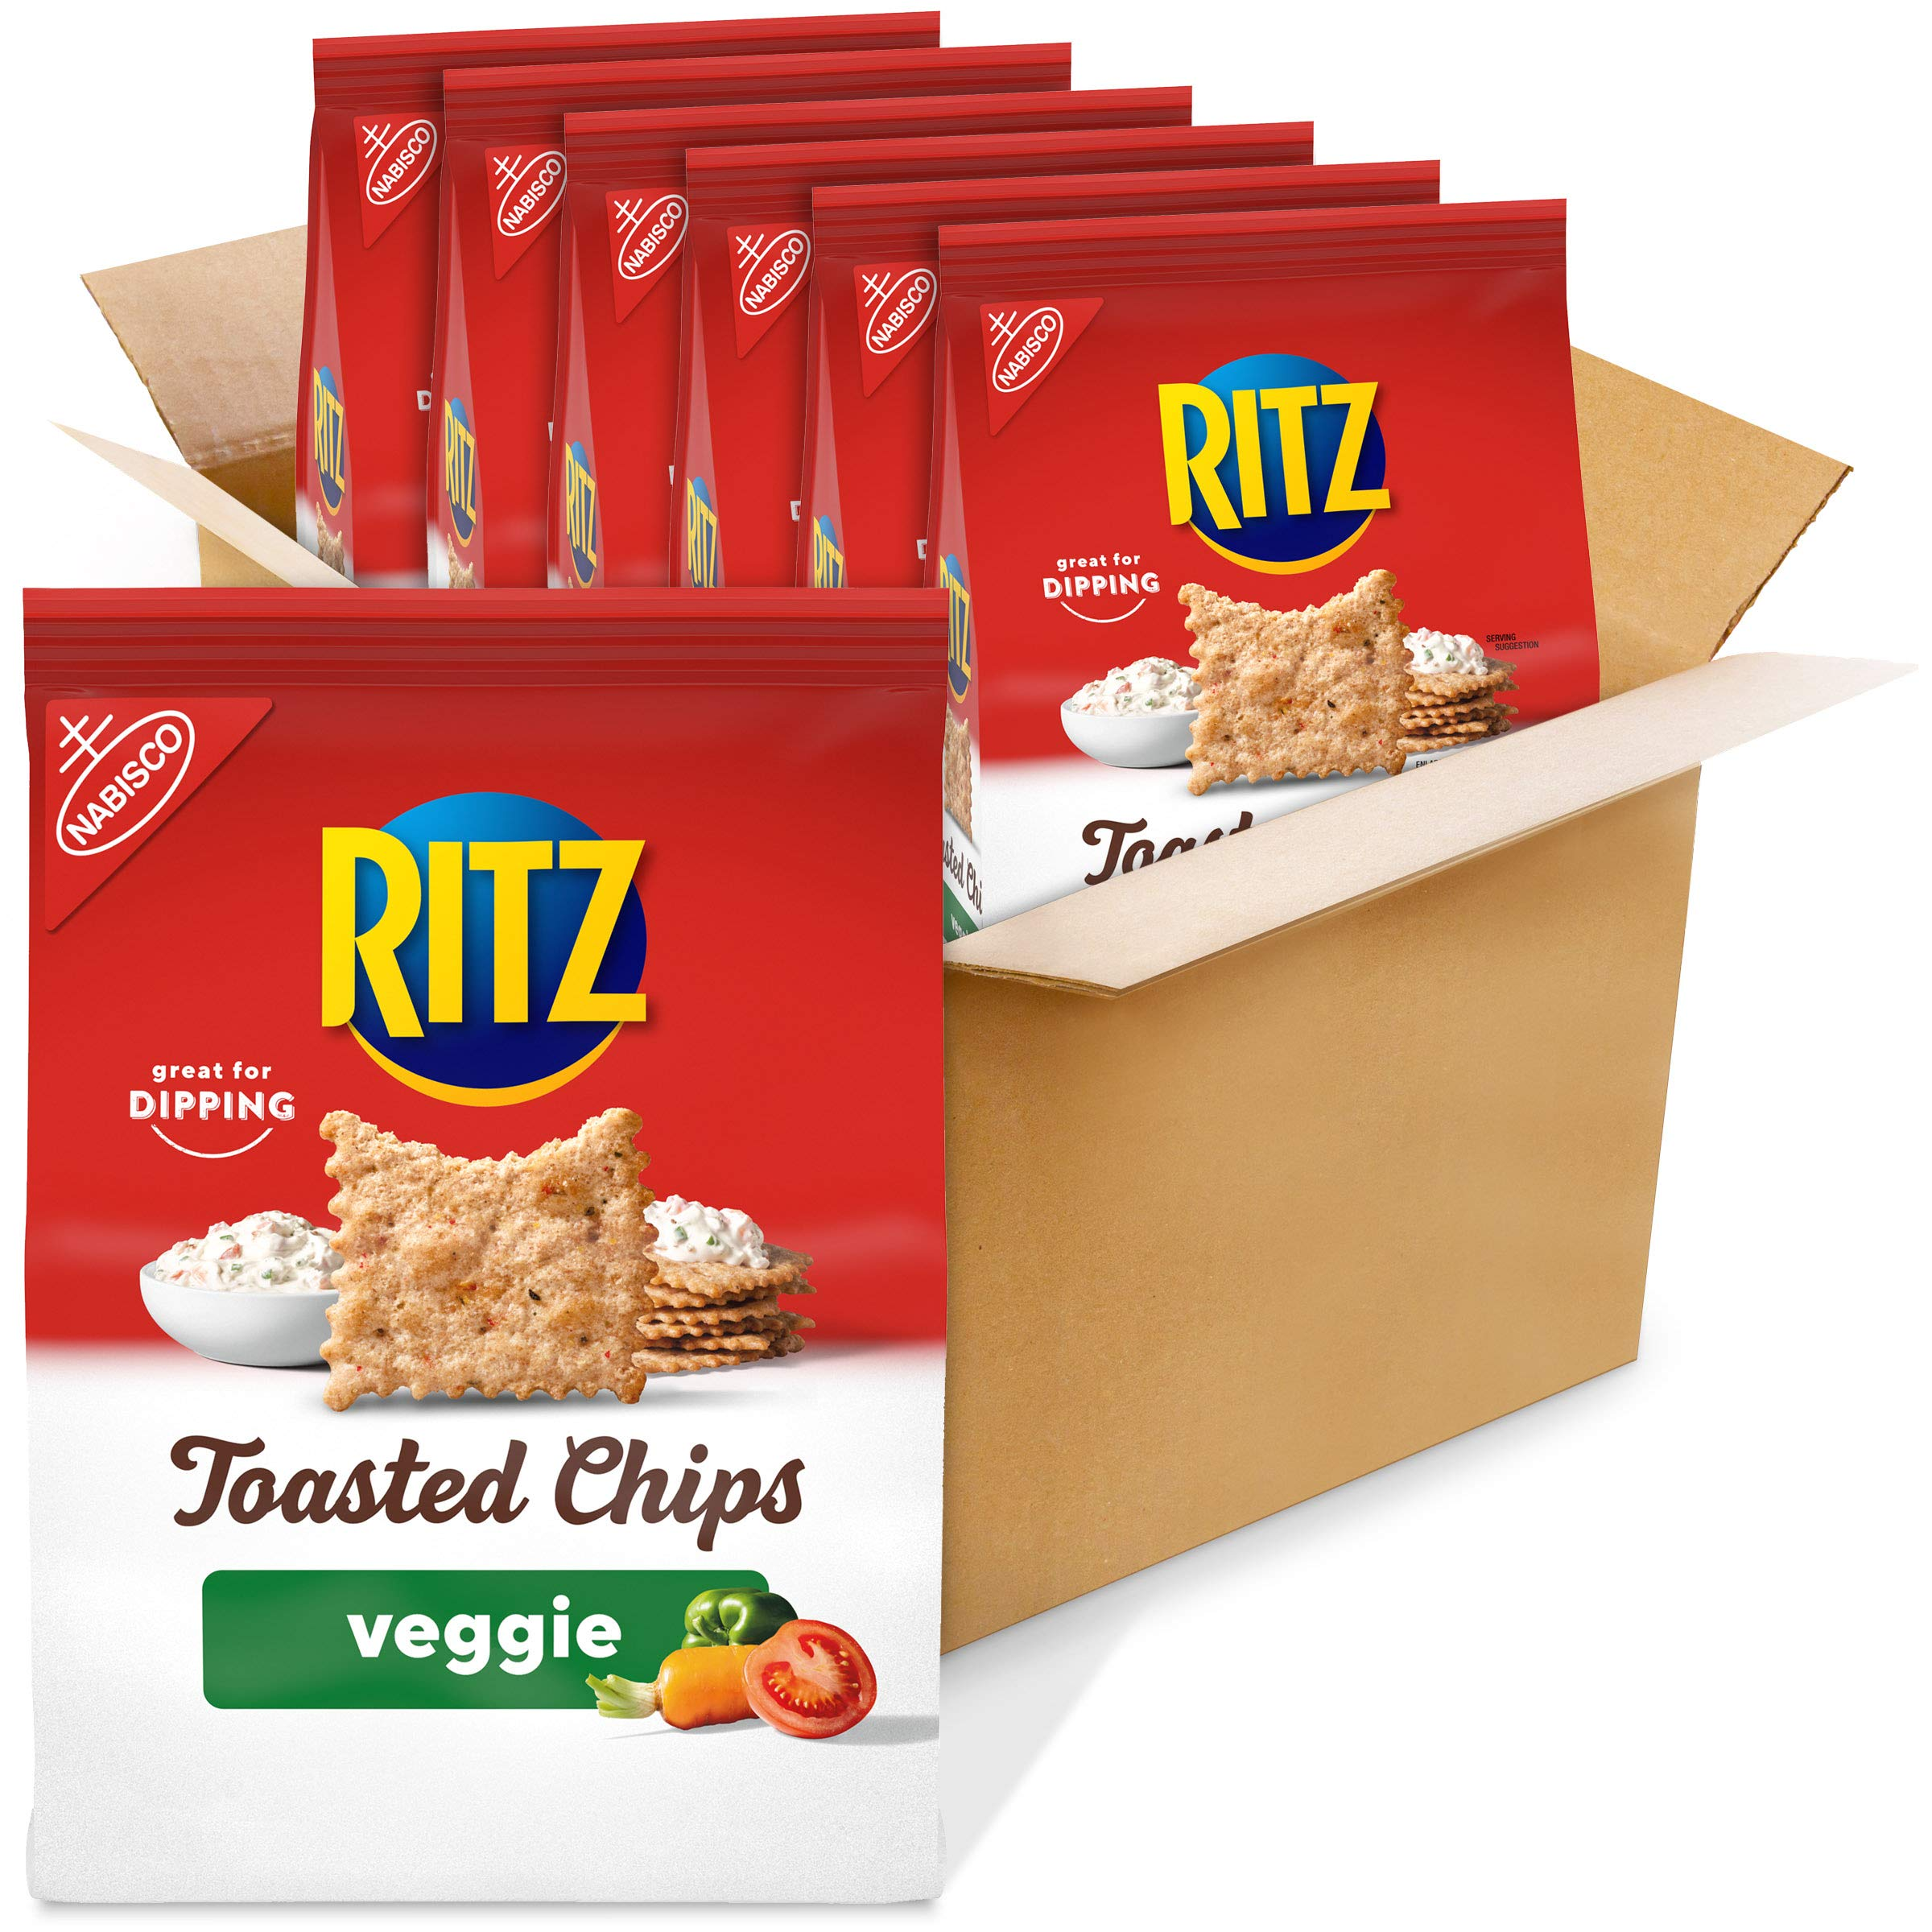 RITZ Toasted Chips Veggie, 6 - 8.1 oz Bags